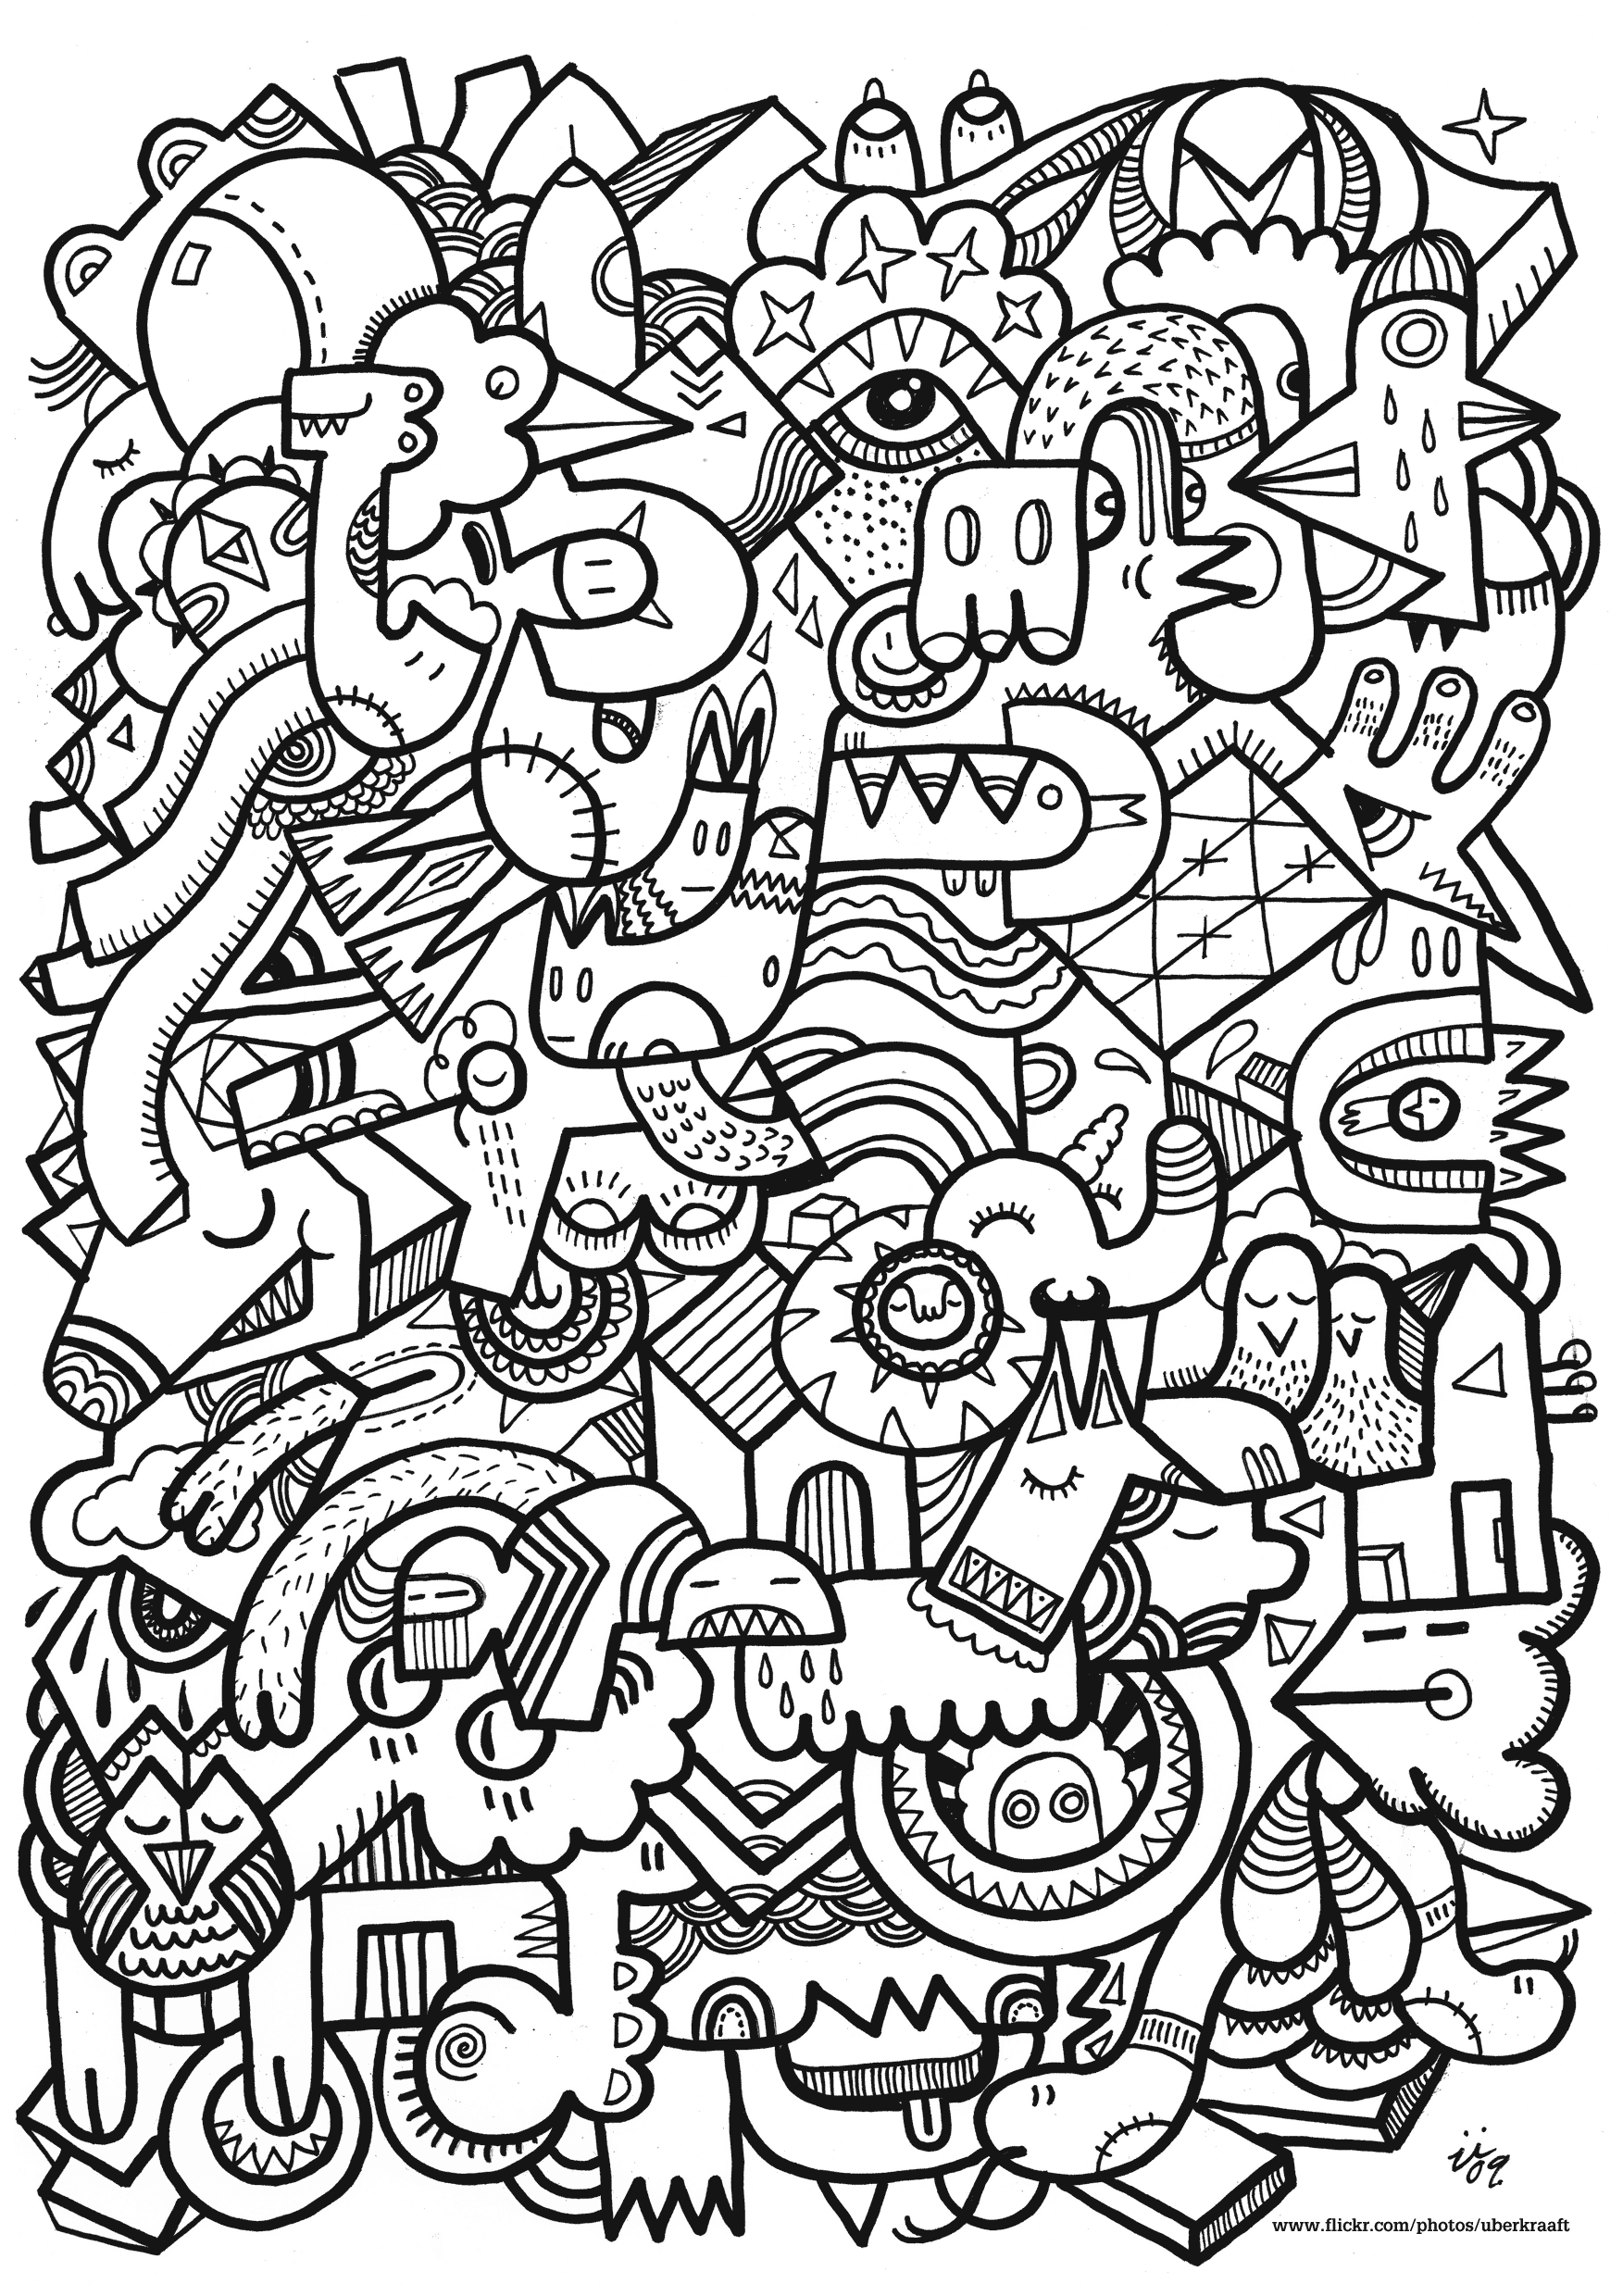 patterns difficult colouring pages dessin illustration et - Coloring Pages Difficult Printable